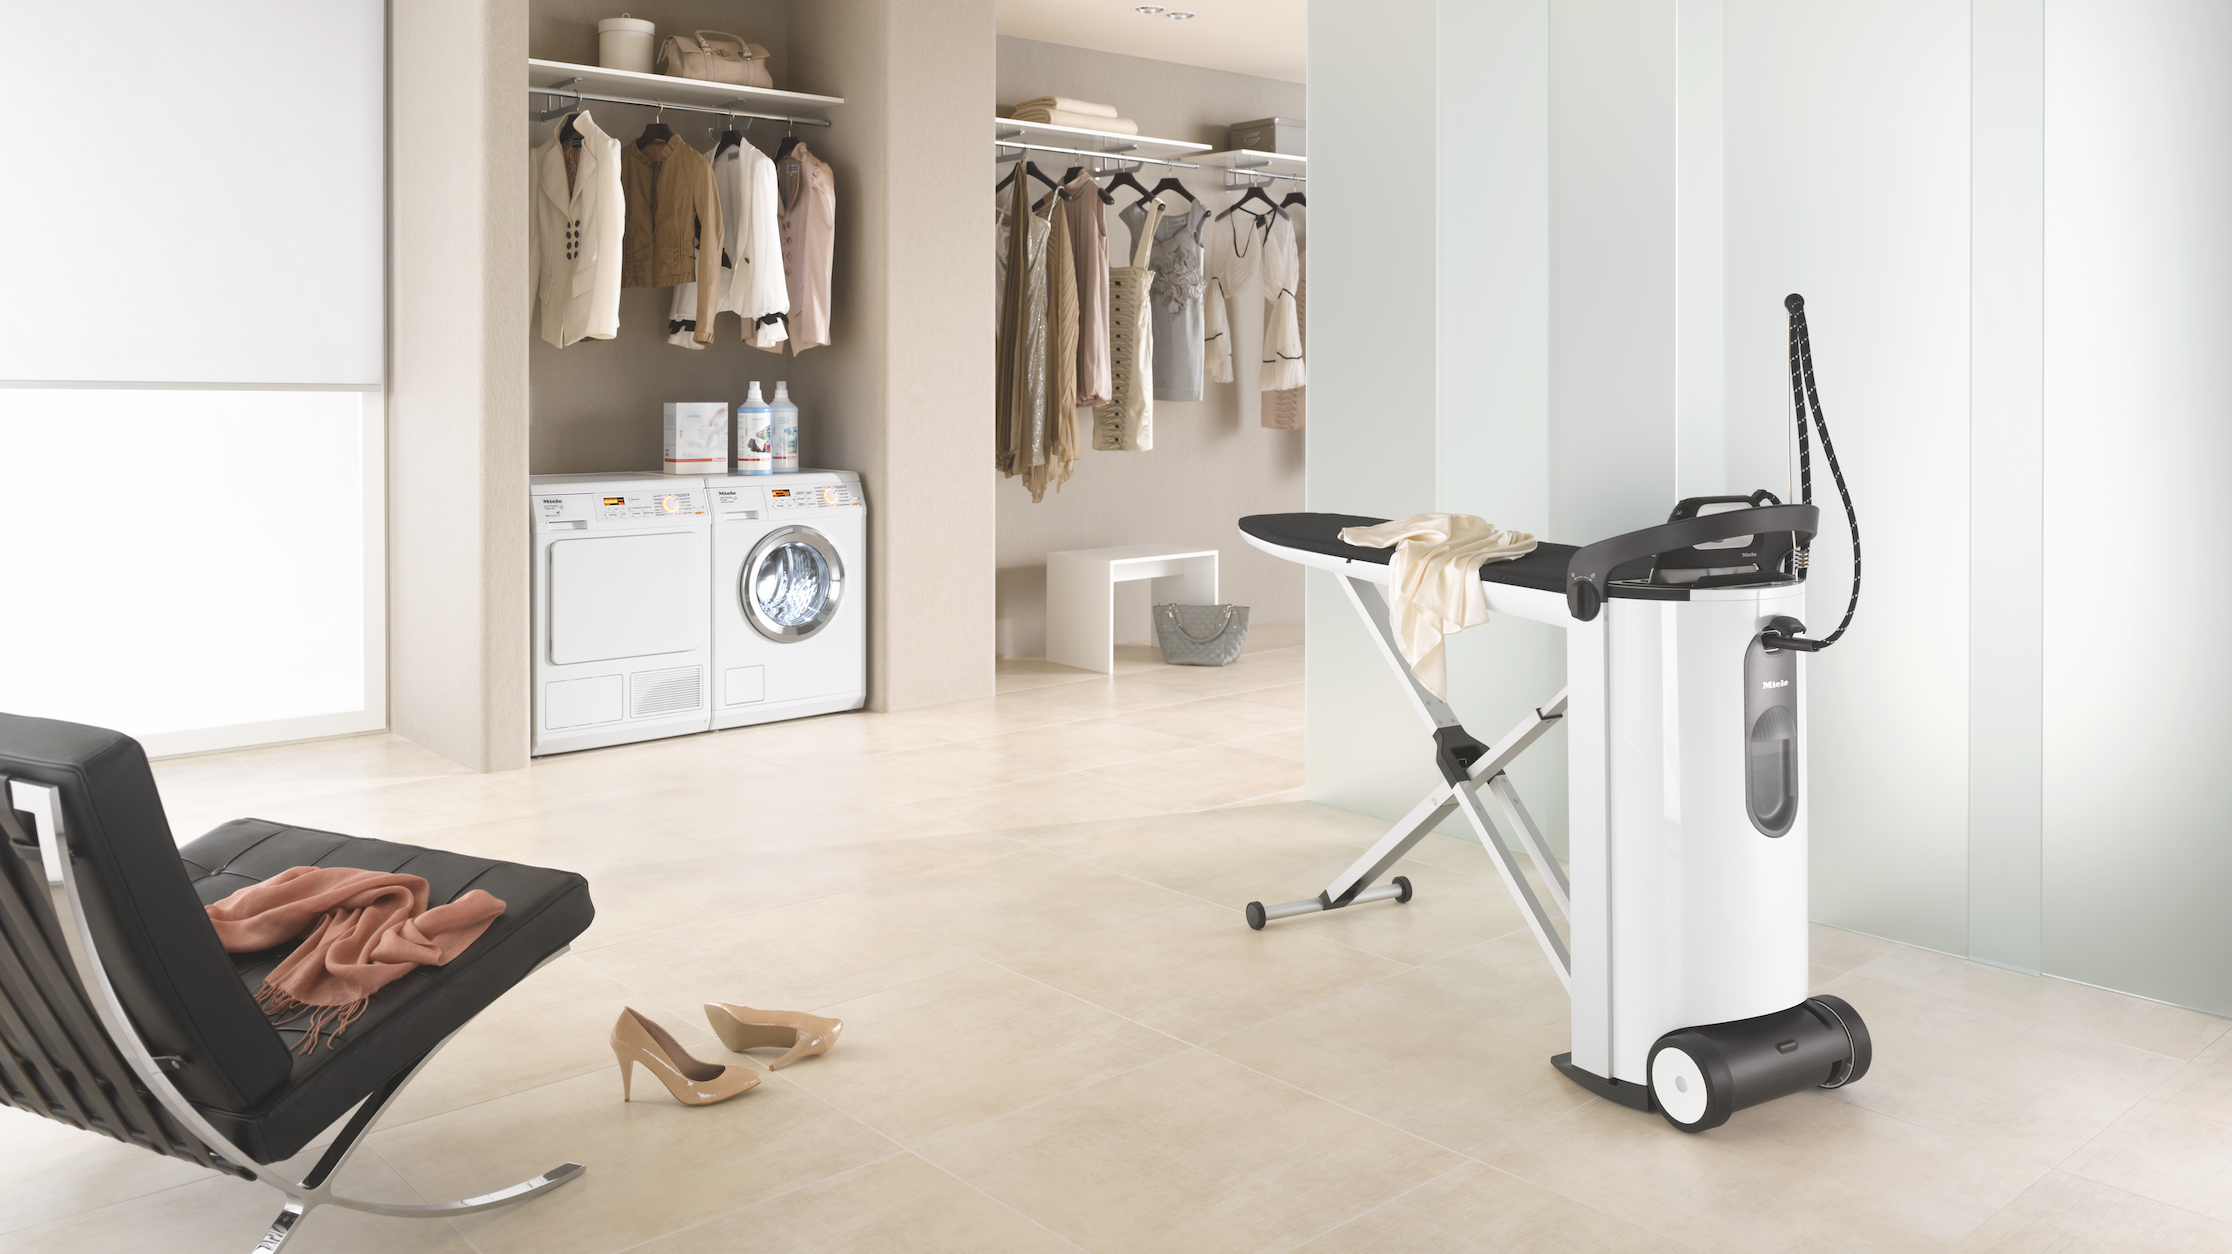 The new FashionMaster steam iron from Miele.